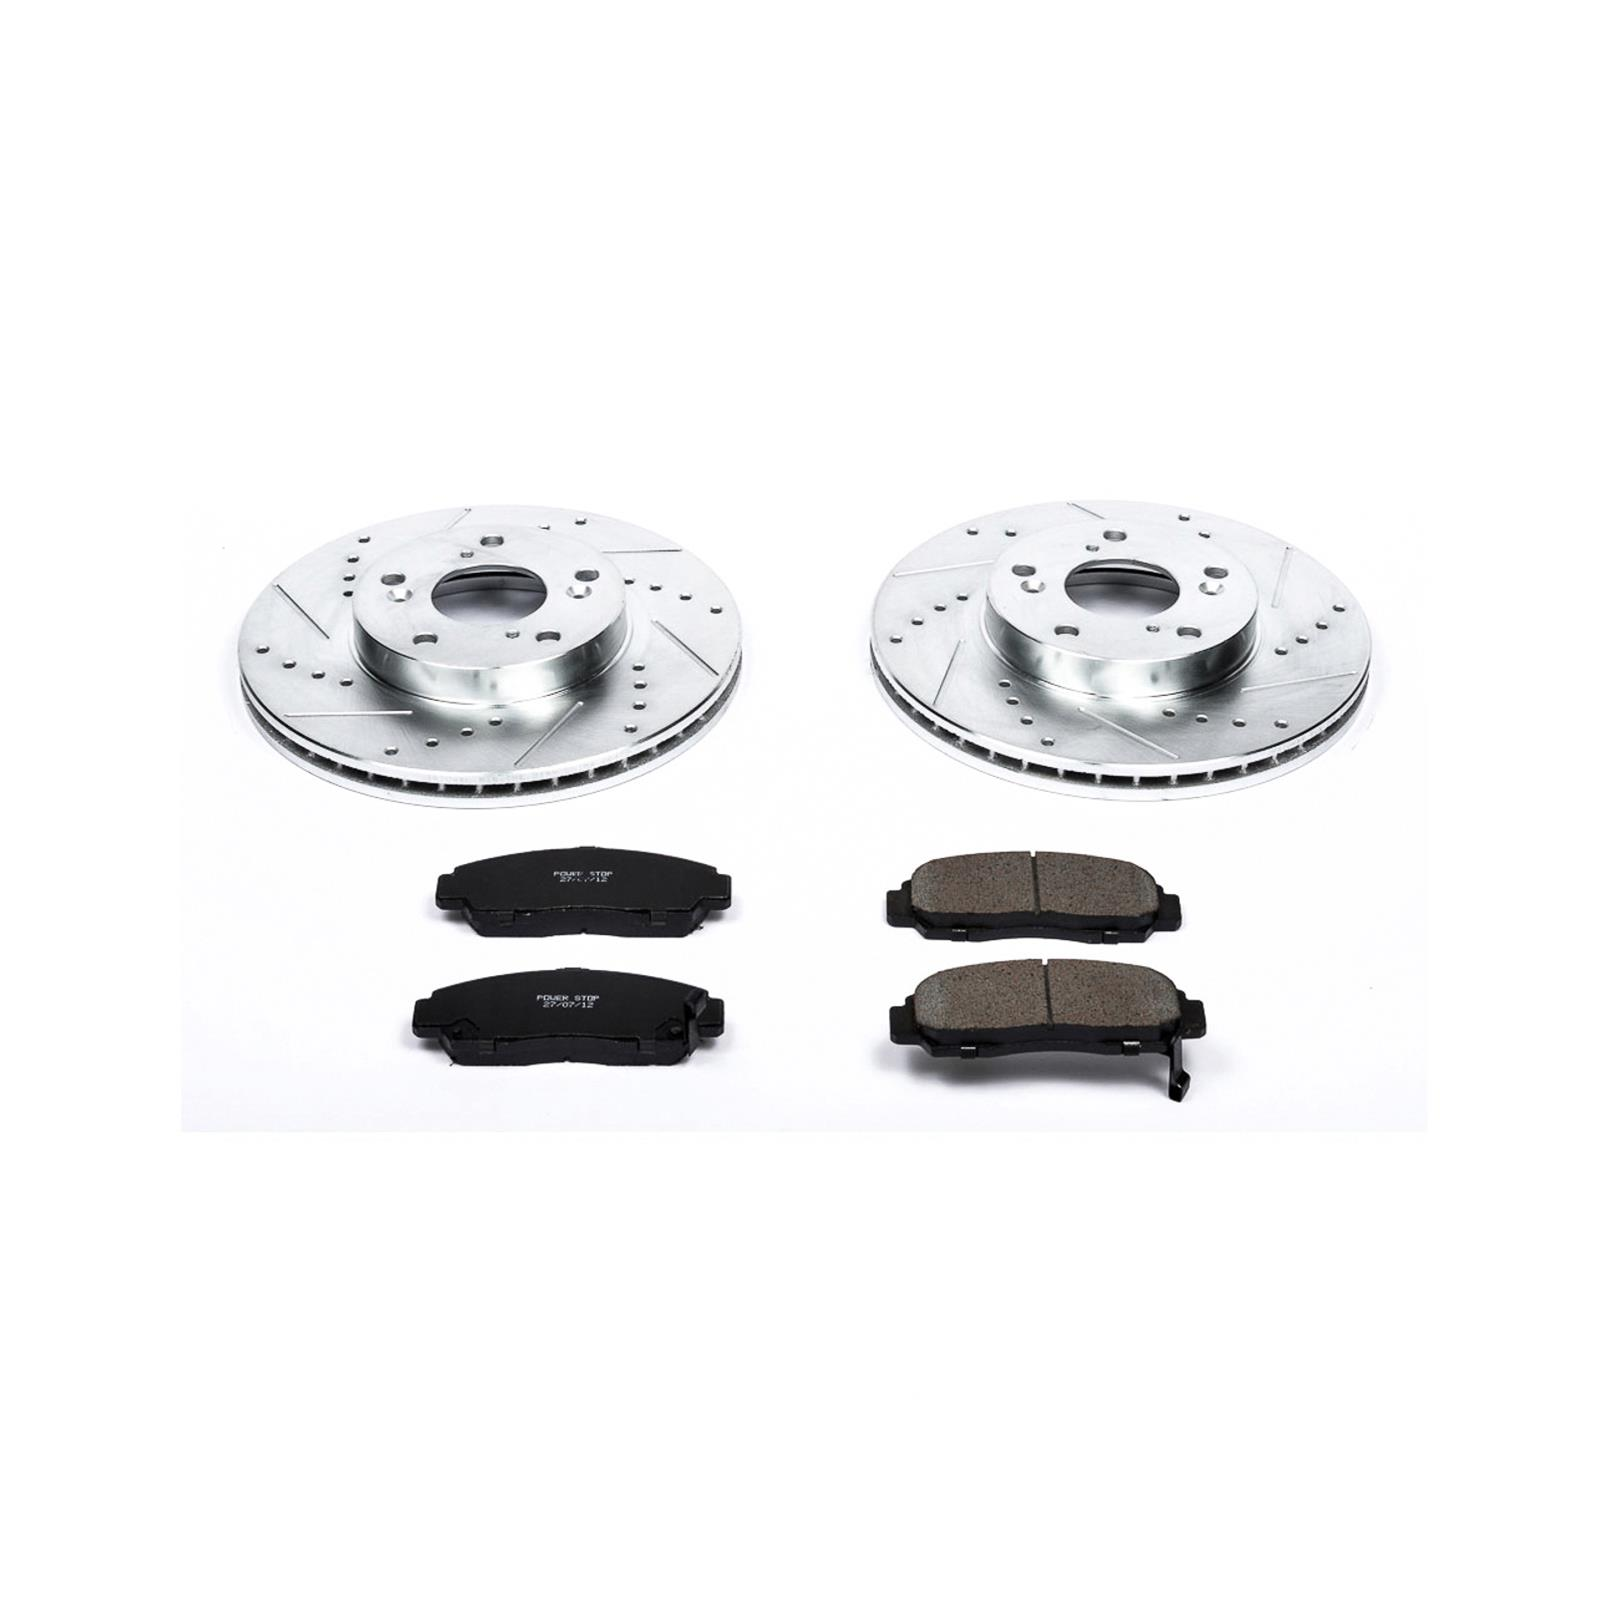 Details about Brake Rotors/Pads Cross-Drilled/Slotted Iron Zinc Dichromate  Plated Kit